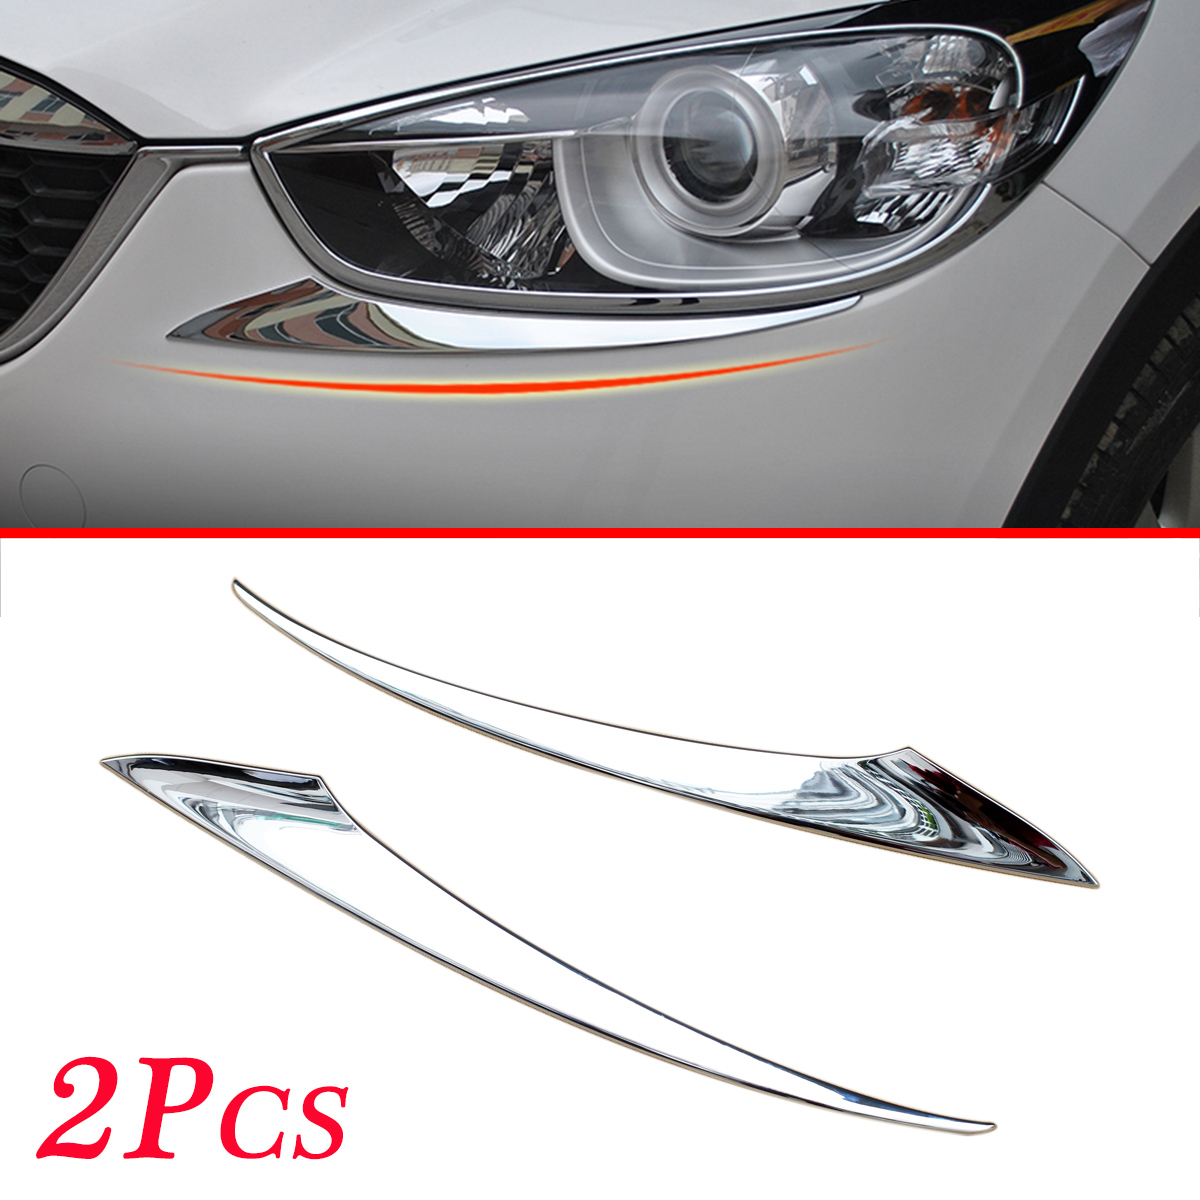 Chrome Front Head Light Lamp Cover Stripes Trim Moulding Fit For <font><b>Mazda</b></font> <font><b>CX</b></font>-<font><b>5</b></font> 2012 2013 2014 <font><b>2015</b></font> <font><b>2016</b></font> Accessories 2Pcs image